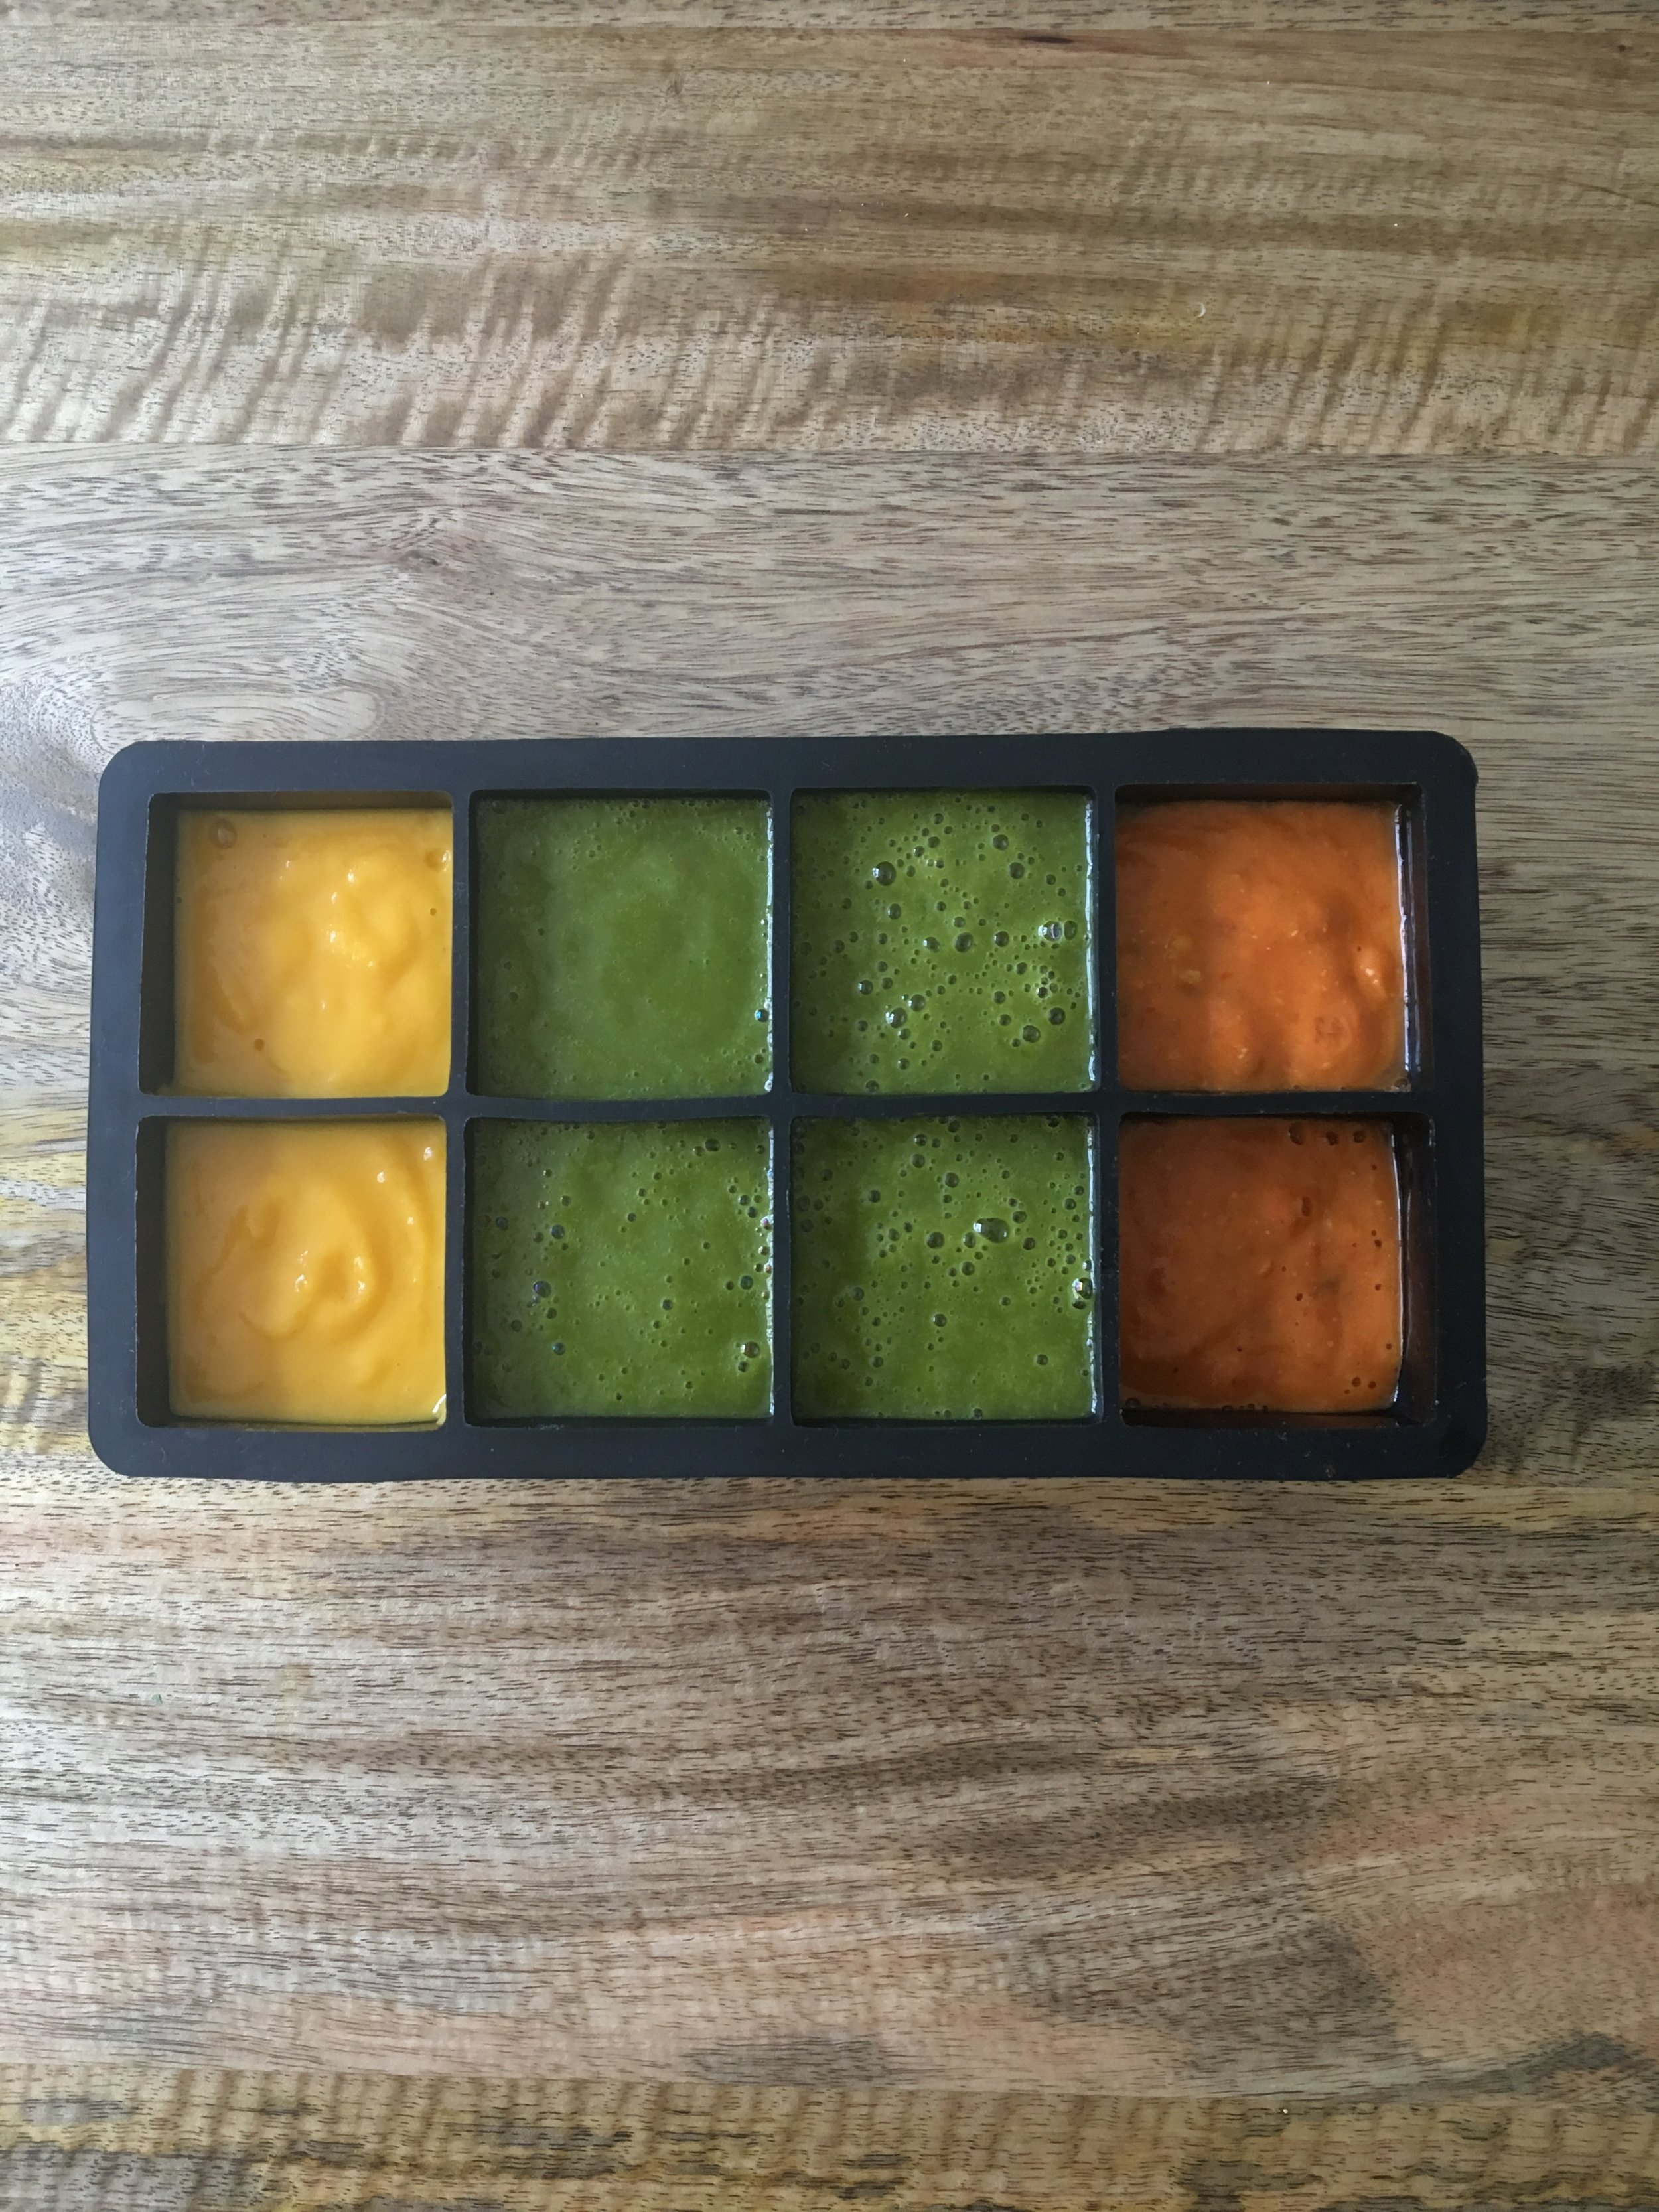 HOMEMADE BABY PUREE - Why you should think about reducing the store bought purees and start making your own.